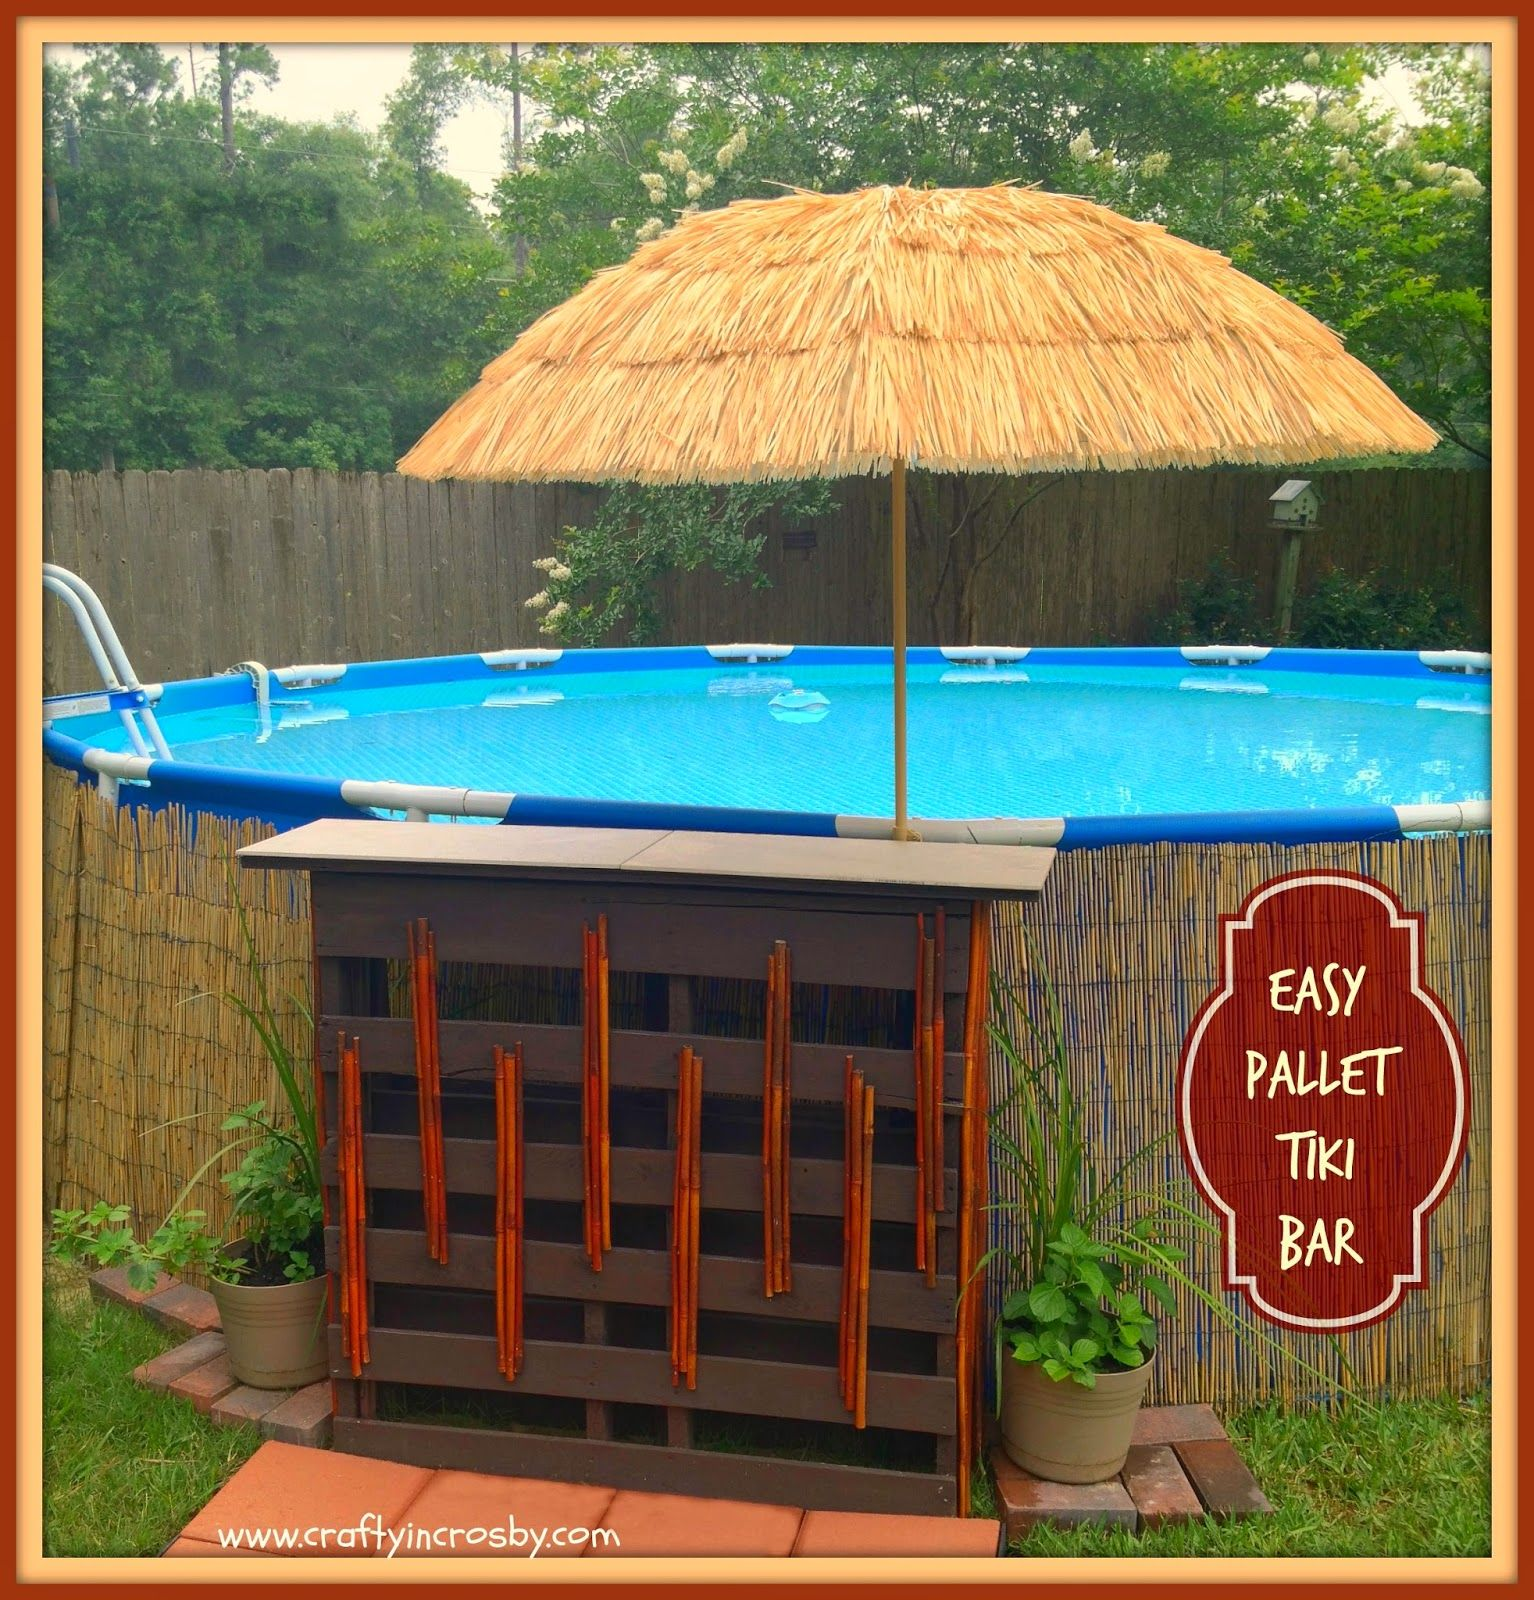 Pallet Bar, Above Ground Pool Decor, Above Ground Pool